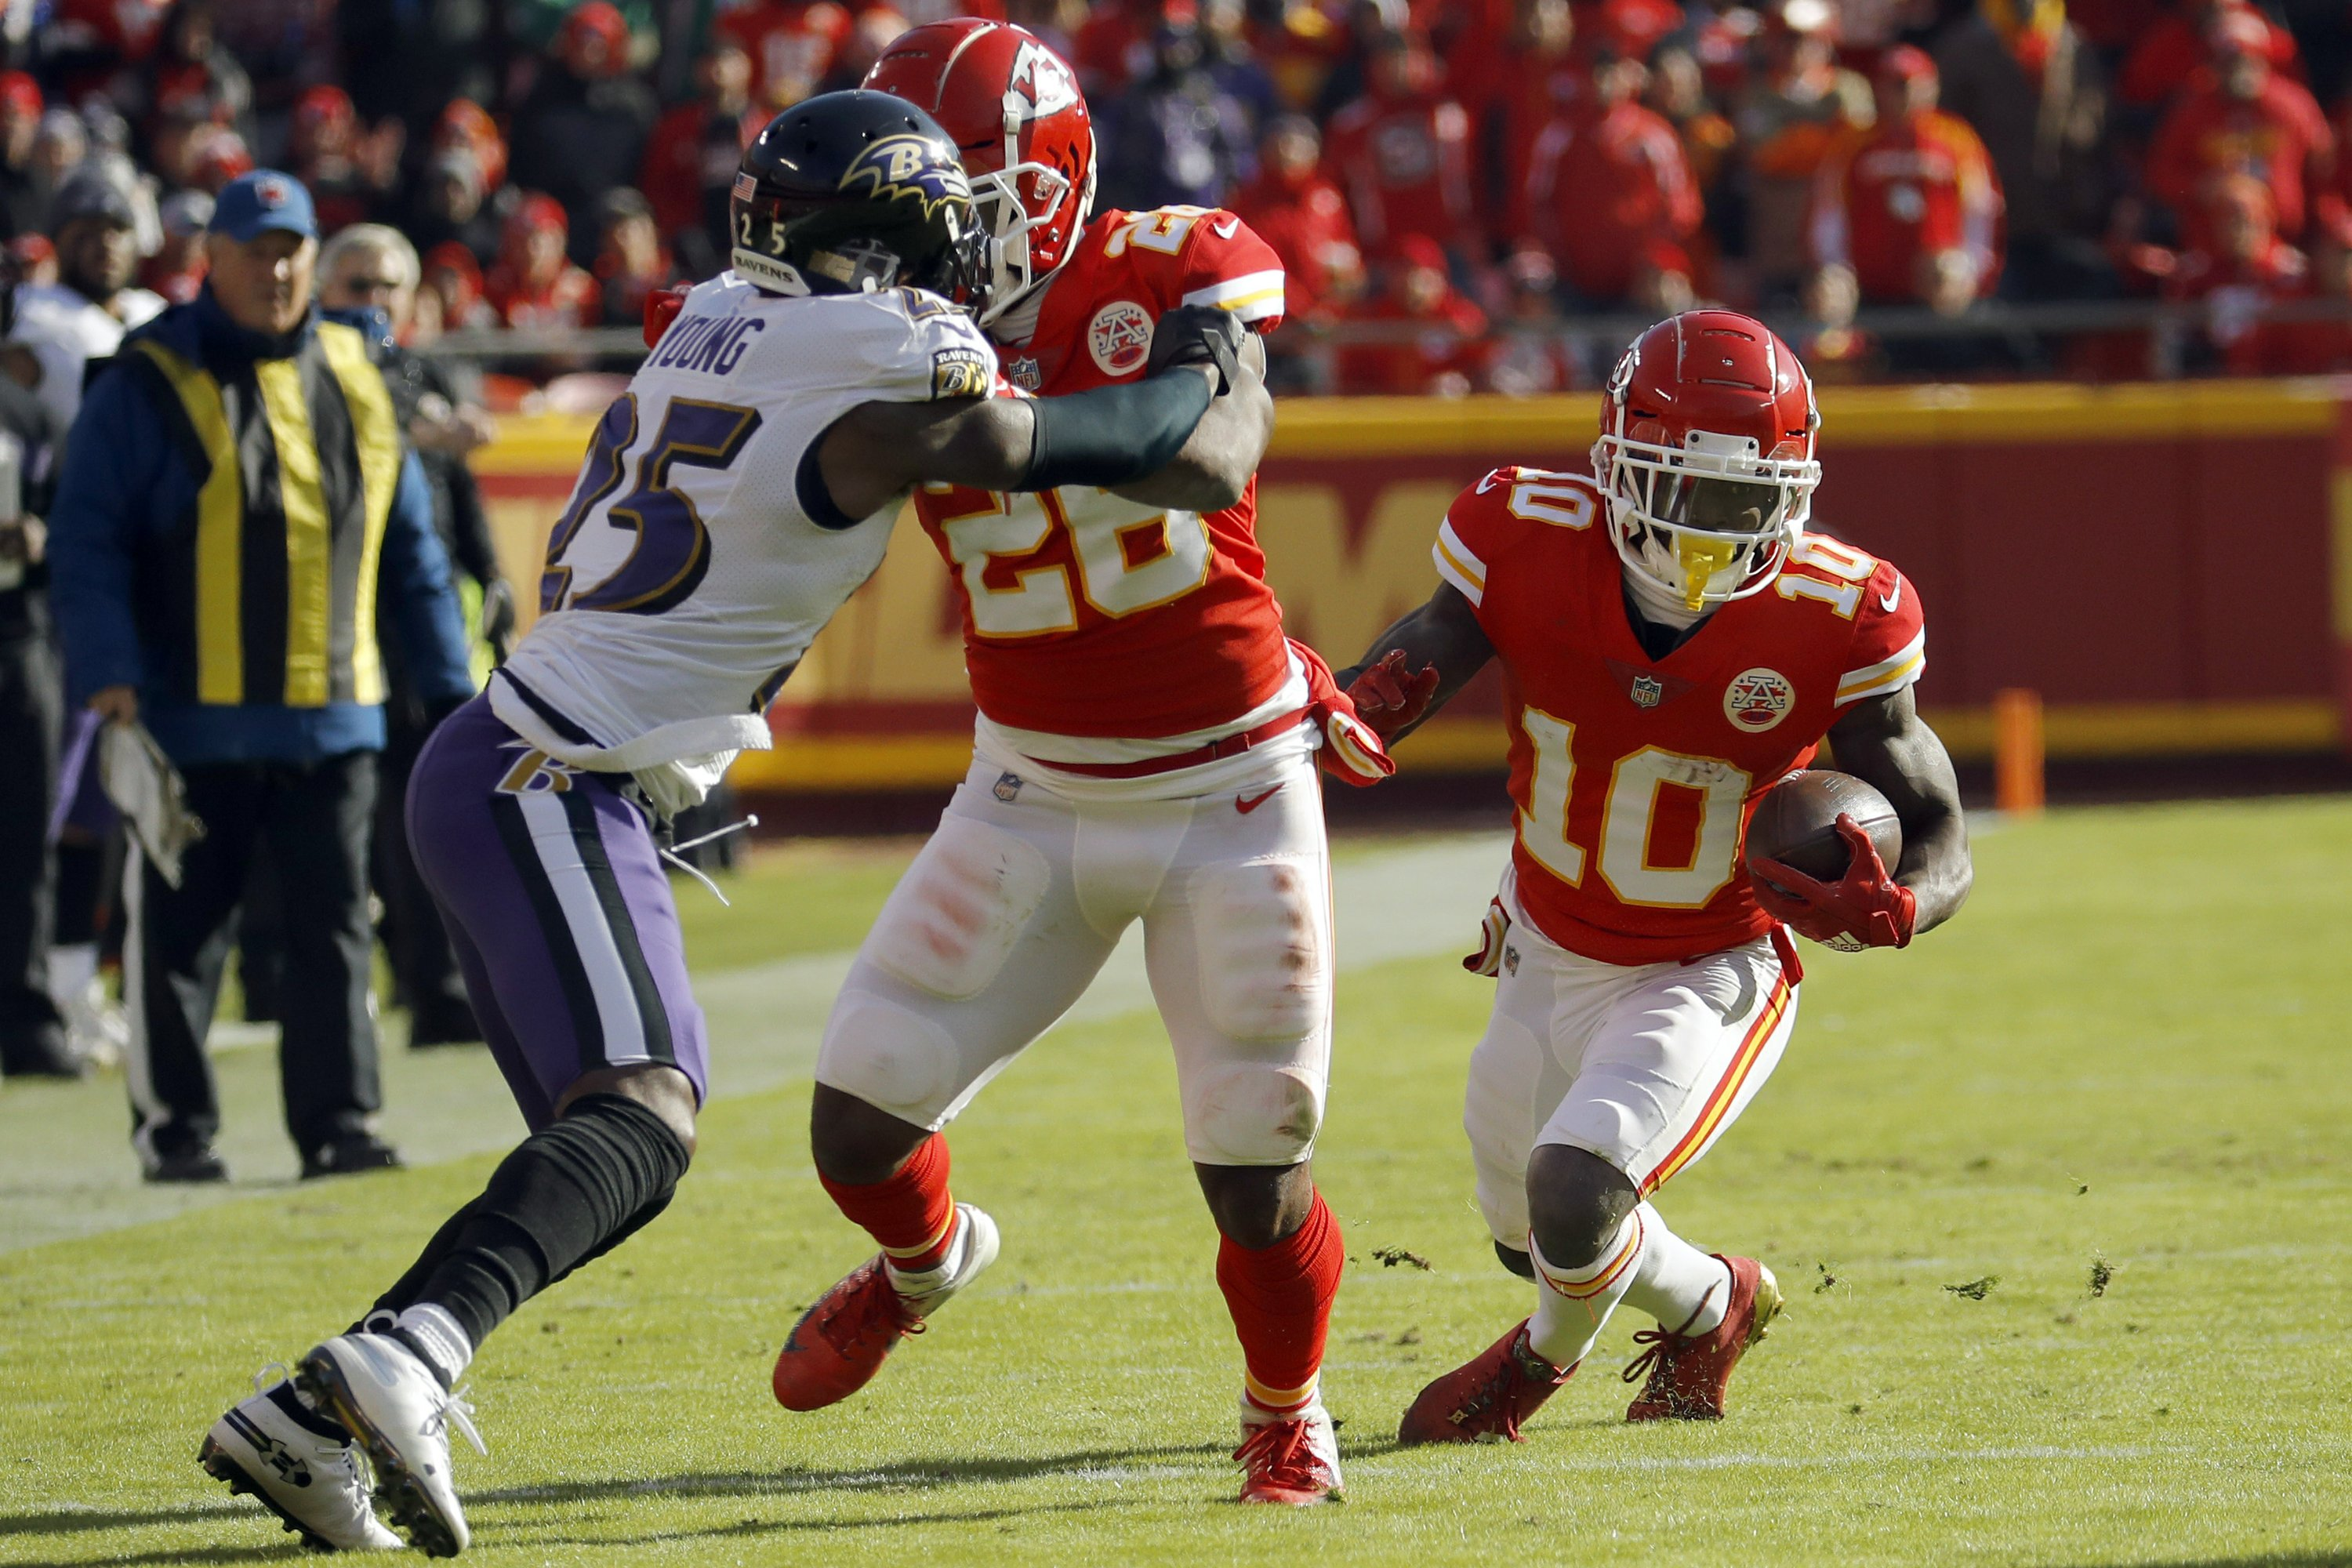 Chiefs' Tyreek Hill shows he is more than just speed